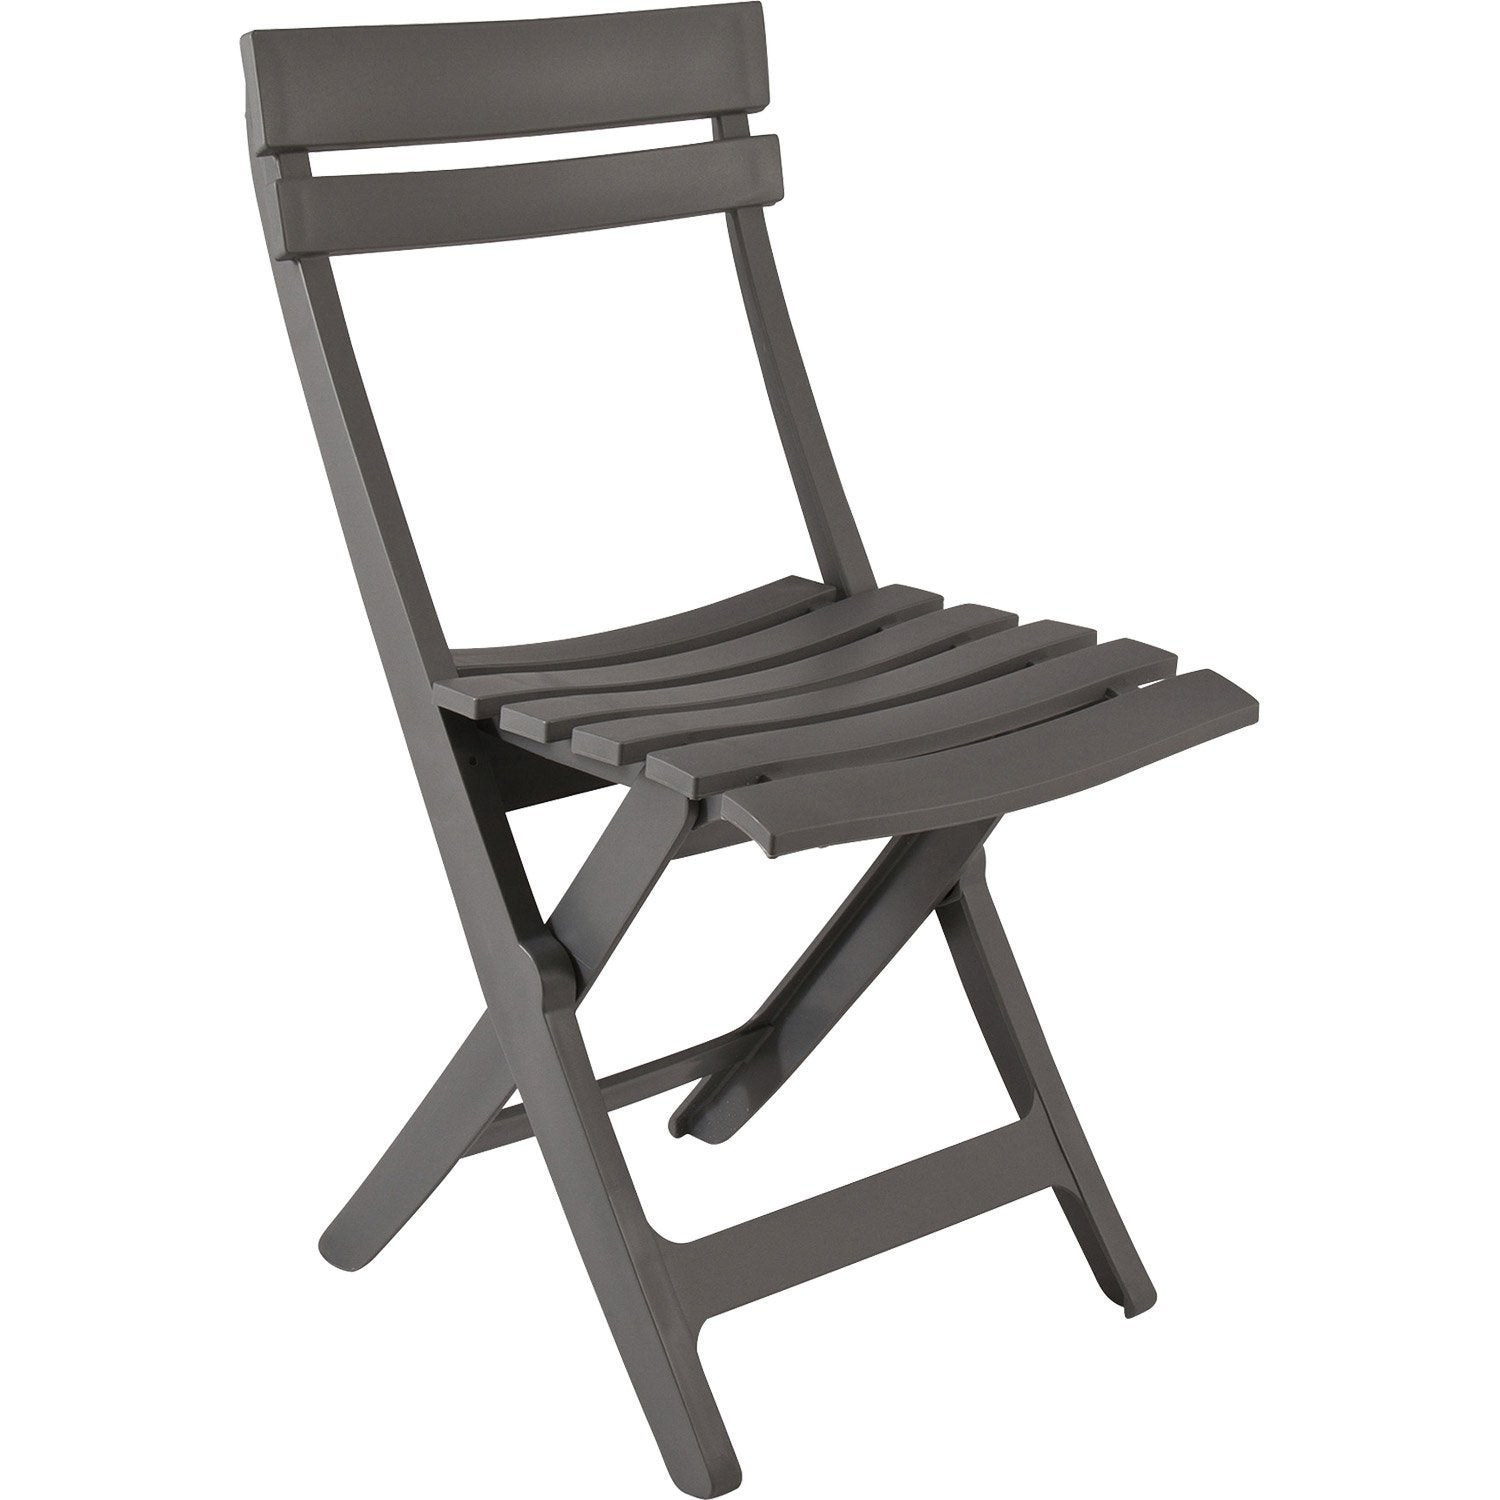 Chaise de jardin en r sine miami gris leroy merlin for Chaise longue leroy merlin